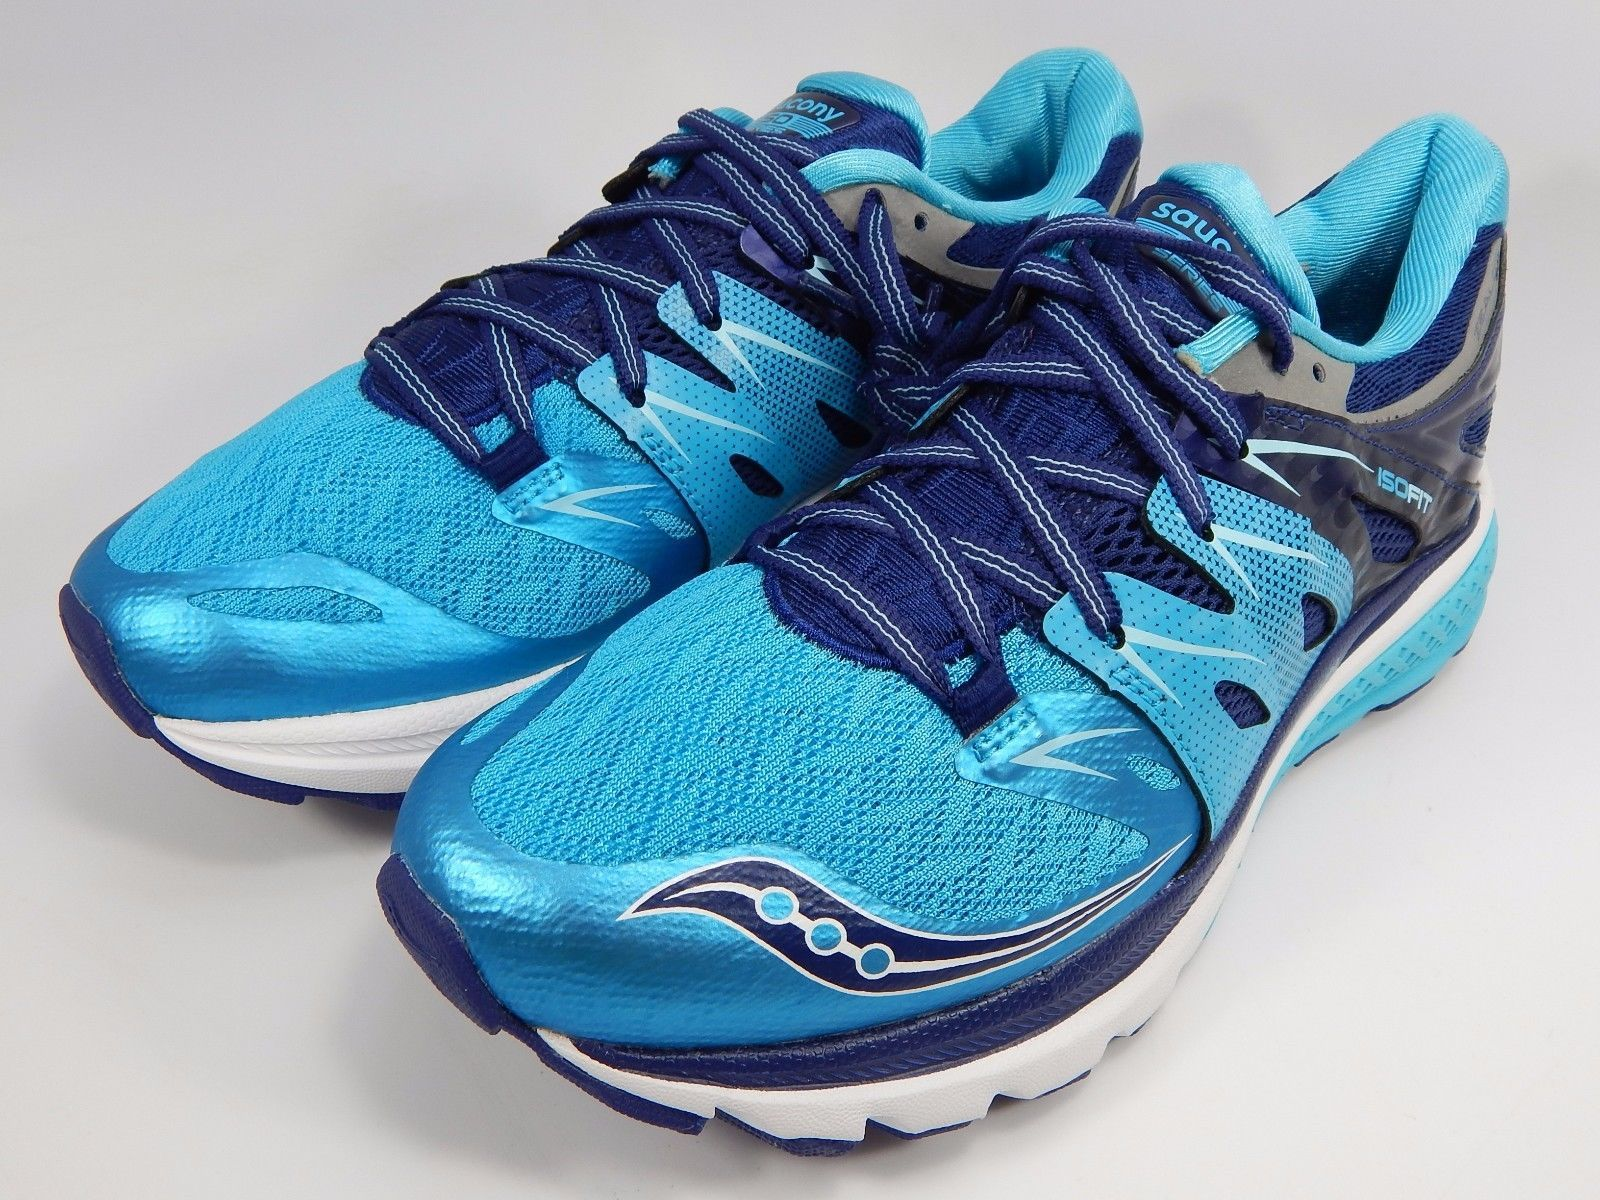 Saucony Zealot ISO 2 Women's Running Shoes Size US 8 M (B) EU 39 Blue S10314-3